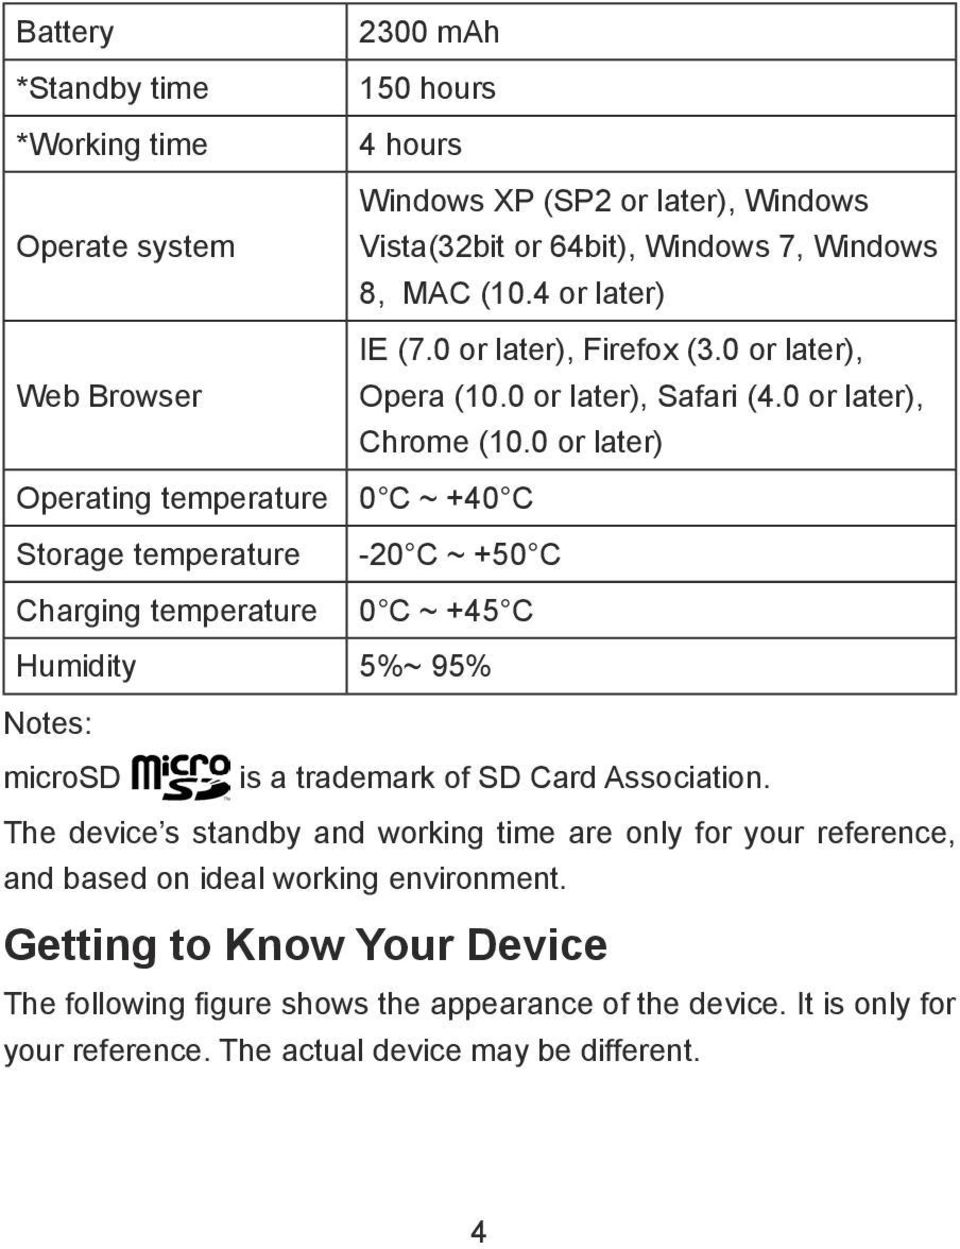 0 or later) Operating temperature 0 C ~ +40 C Storage temperature -20 C ~ +50 C Charging temperature 0 C ~ +45 C Humidity 5%~ 95% Notes: microsd is a trademark of SD Card Association.